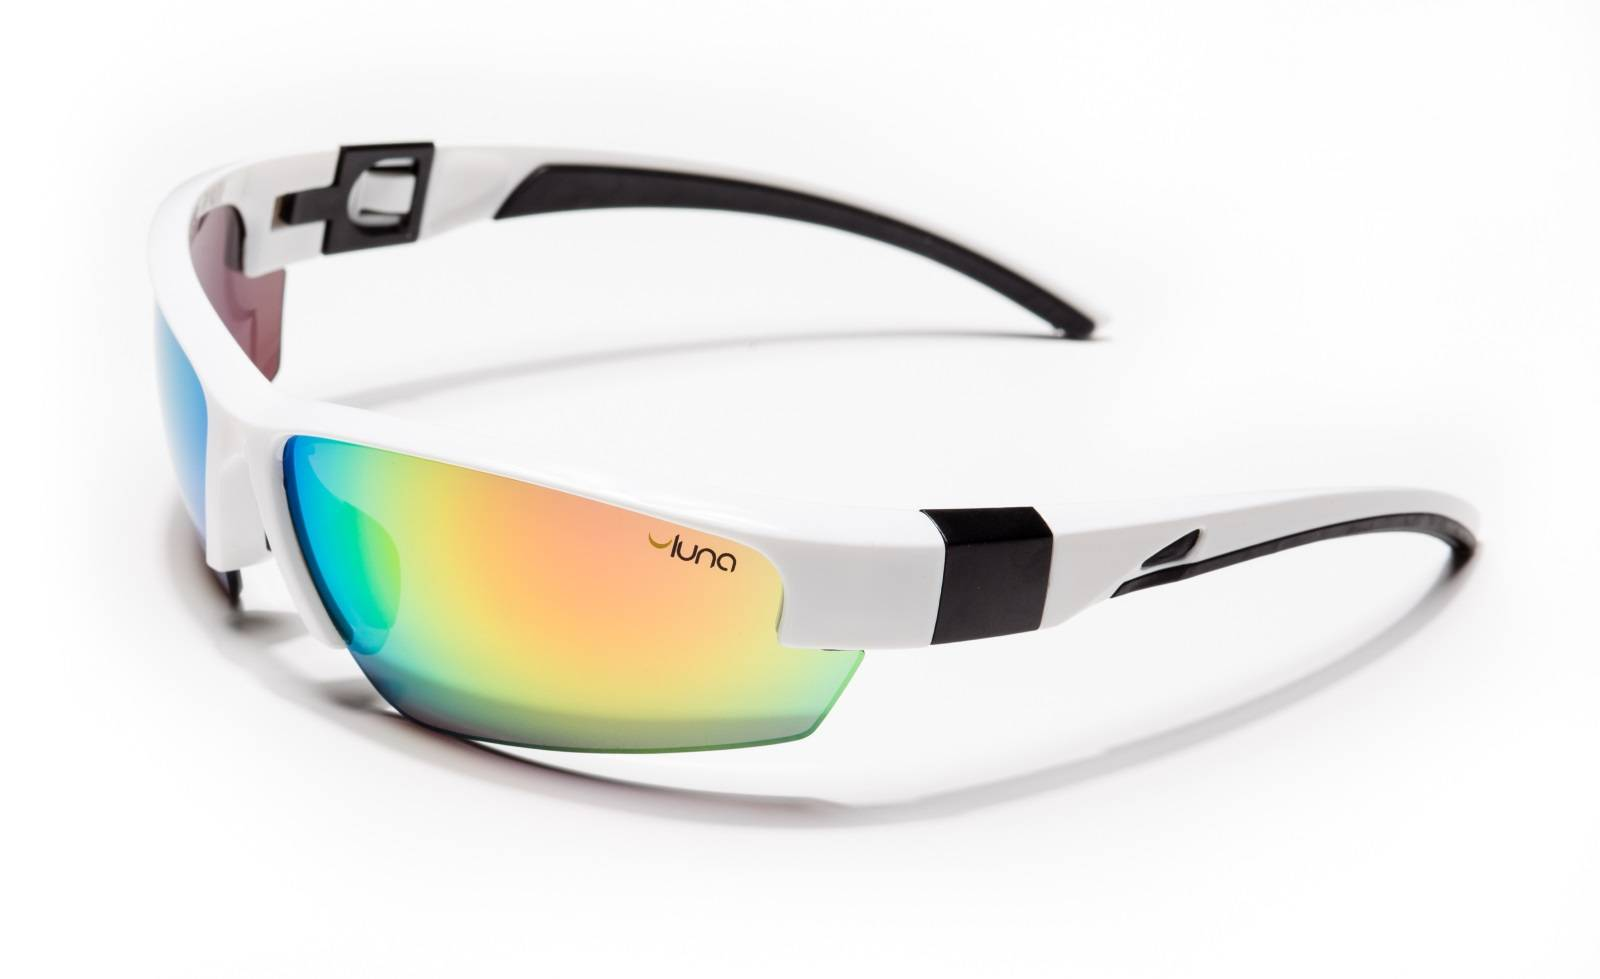 Luna Glasses Luna Mercury Running Cycling Sunglasses with Hard Protective Case (Mirrored Lenses, White/Black Frame)